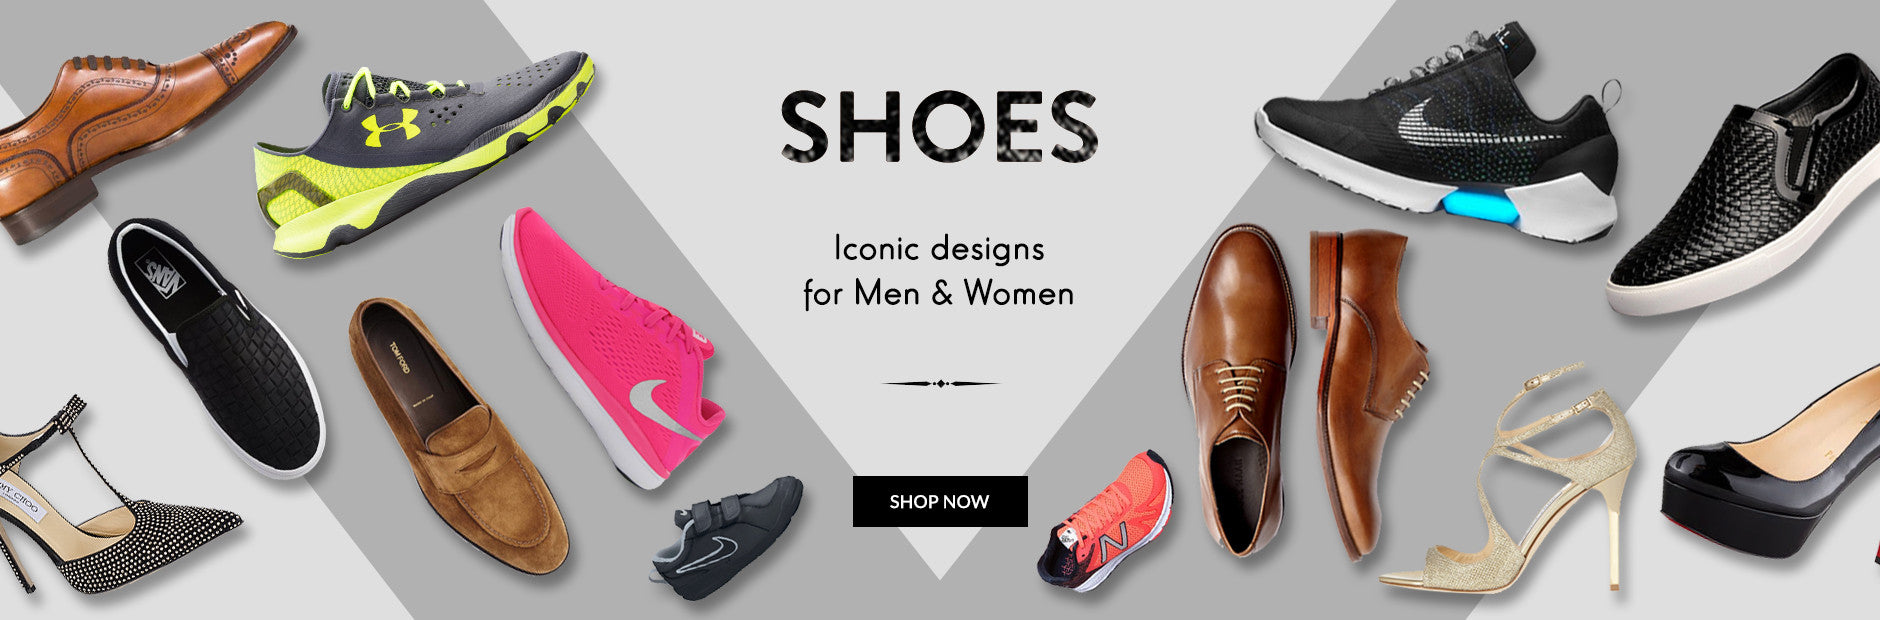 Men & Women Shoes | Lussoliv